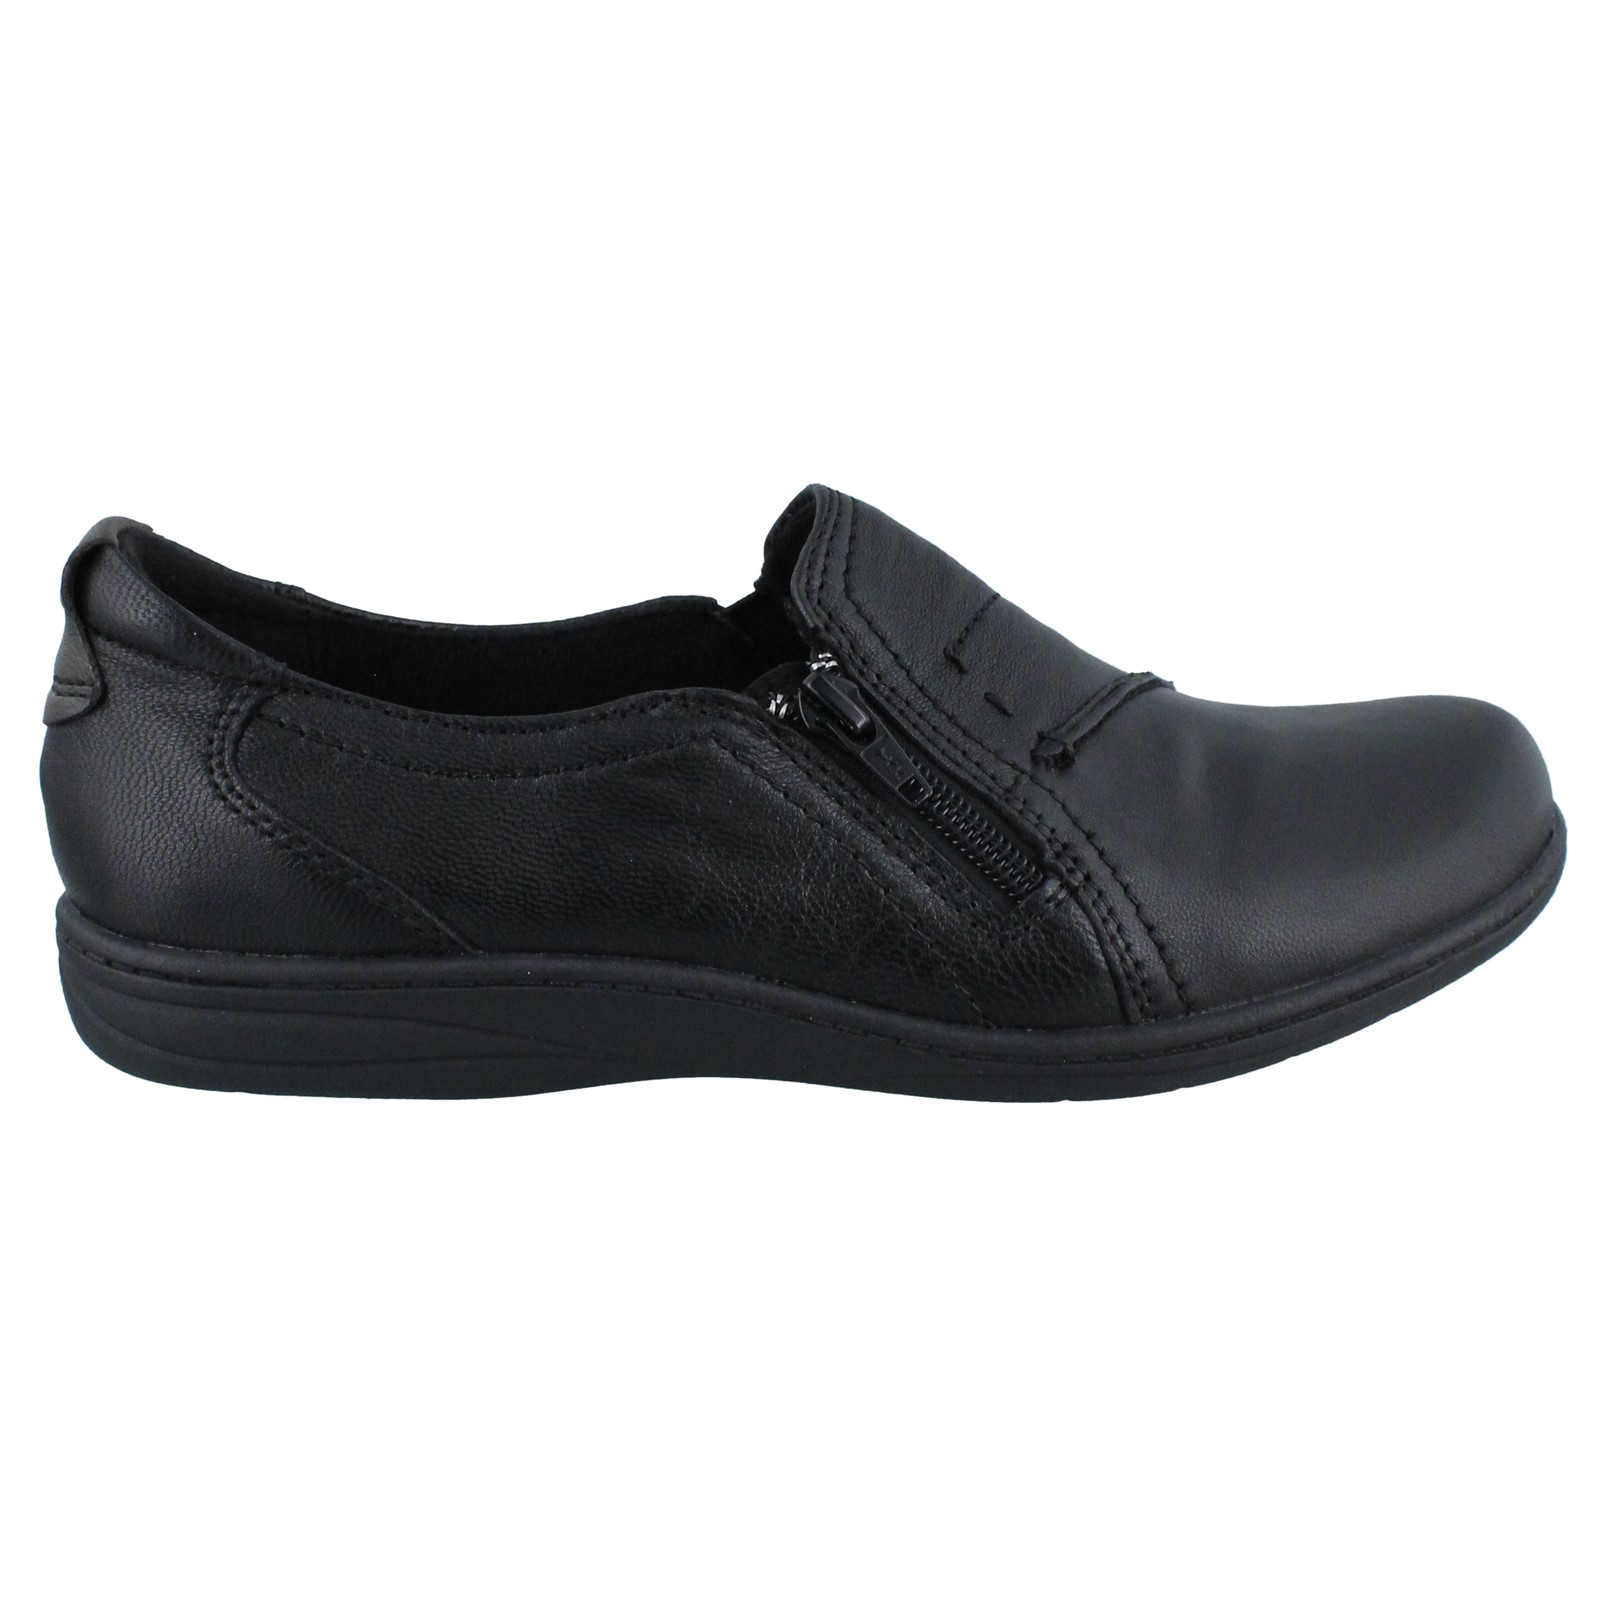 Women's Earth Origins, Jocelyn Slip on Shoe